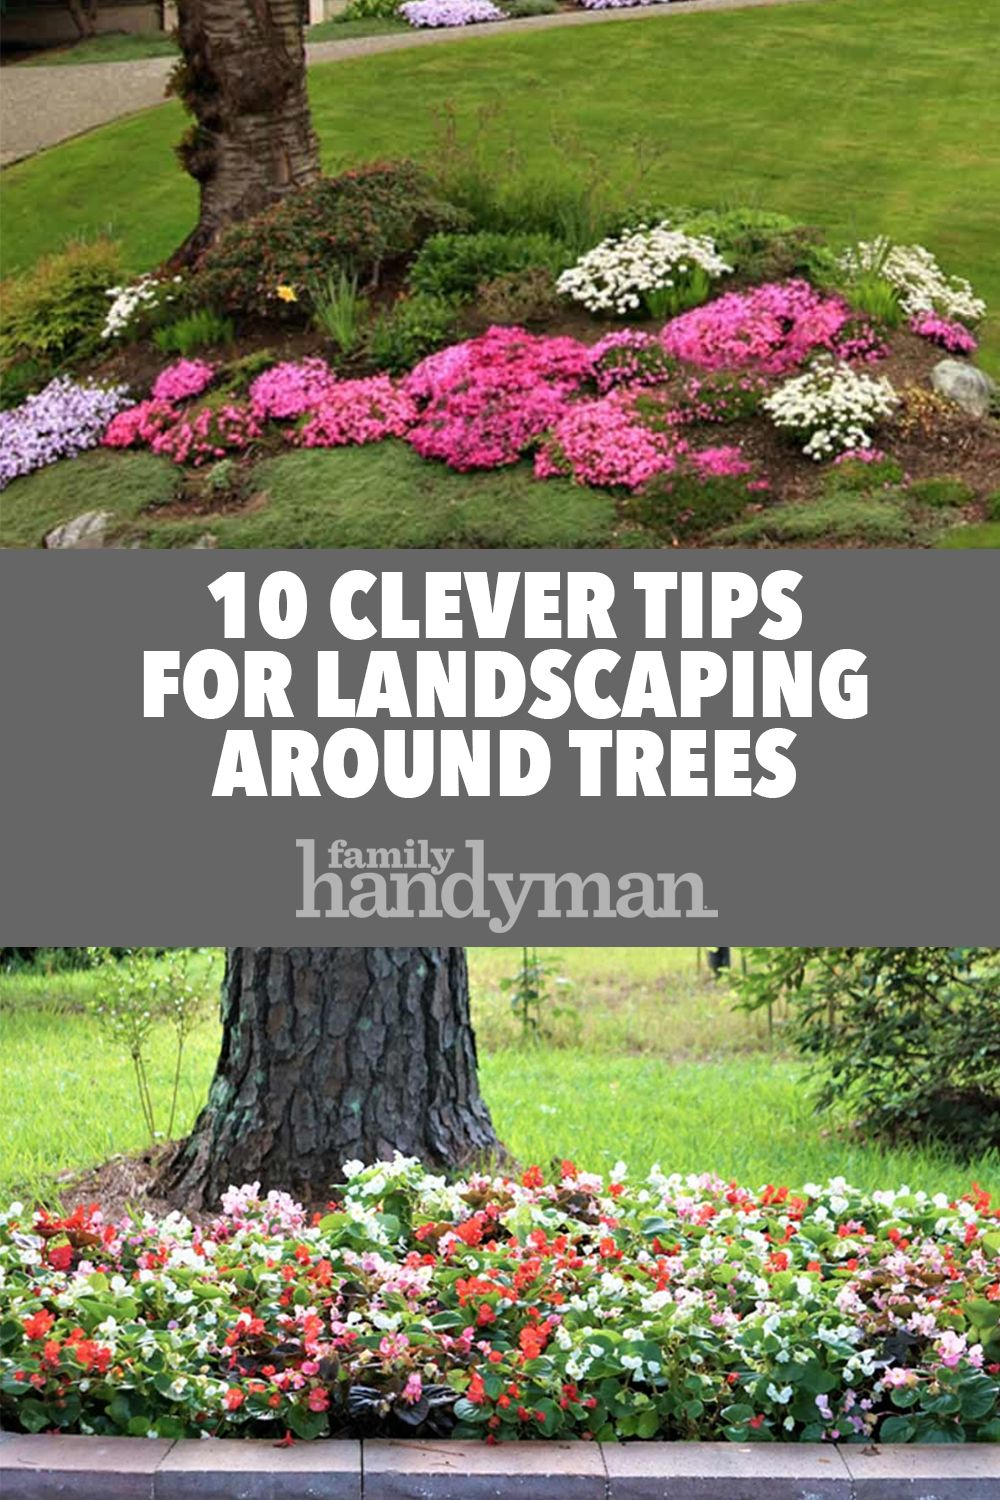 10 Clever Tips for Landscaping Around Trees